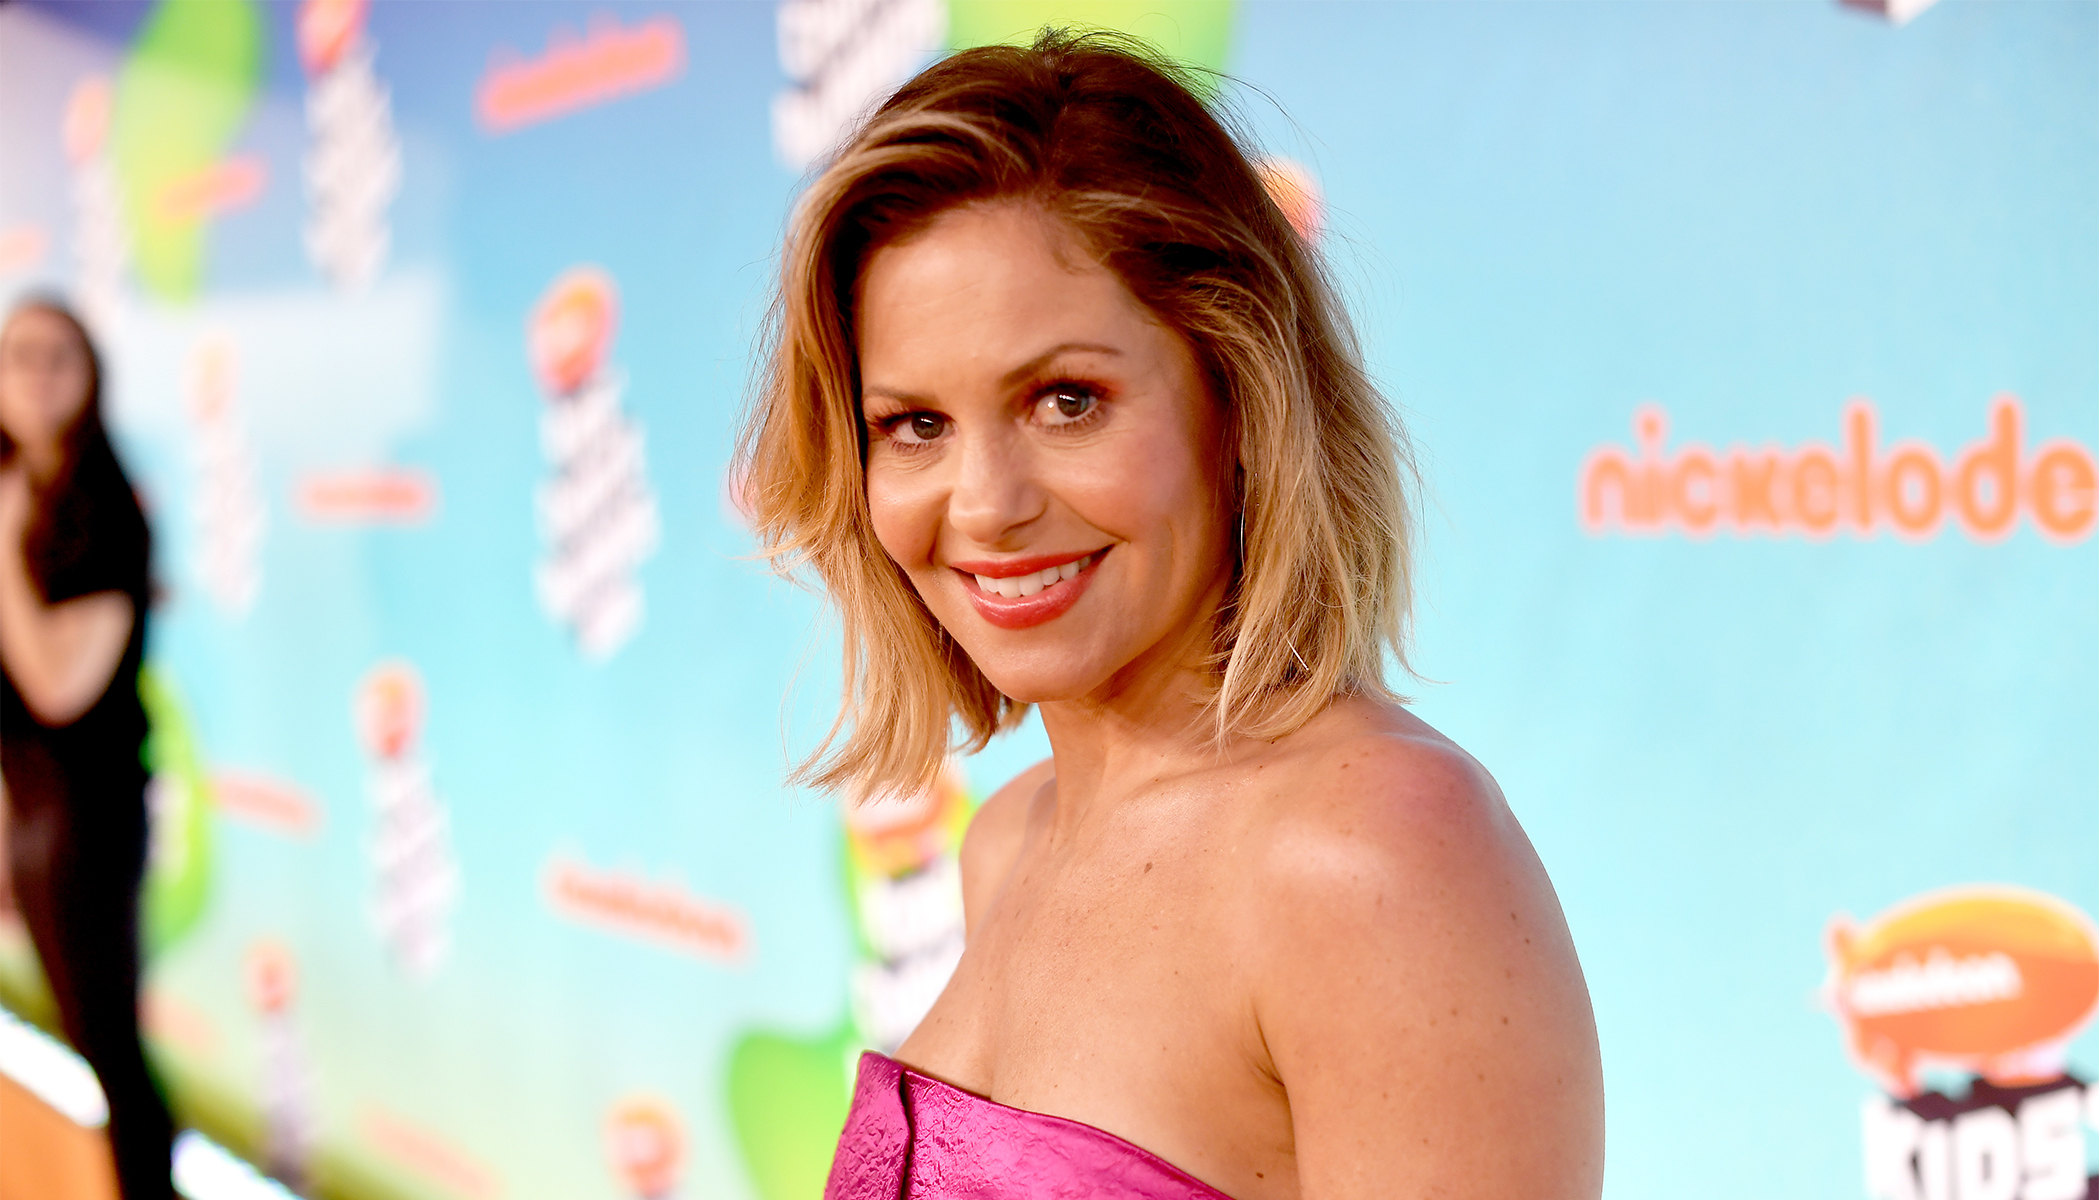 'Fuller House' Actress Candace Cameron-Bure Opens Up About Being an Openly Christian TV Celebrity